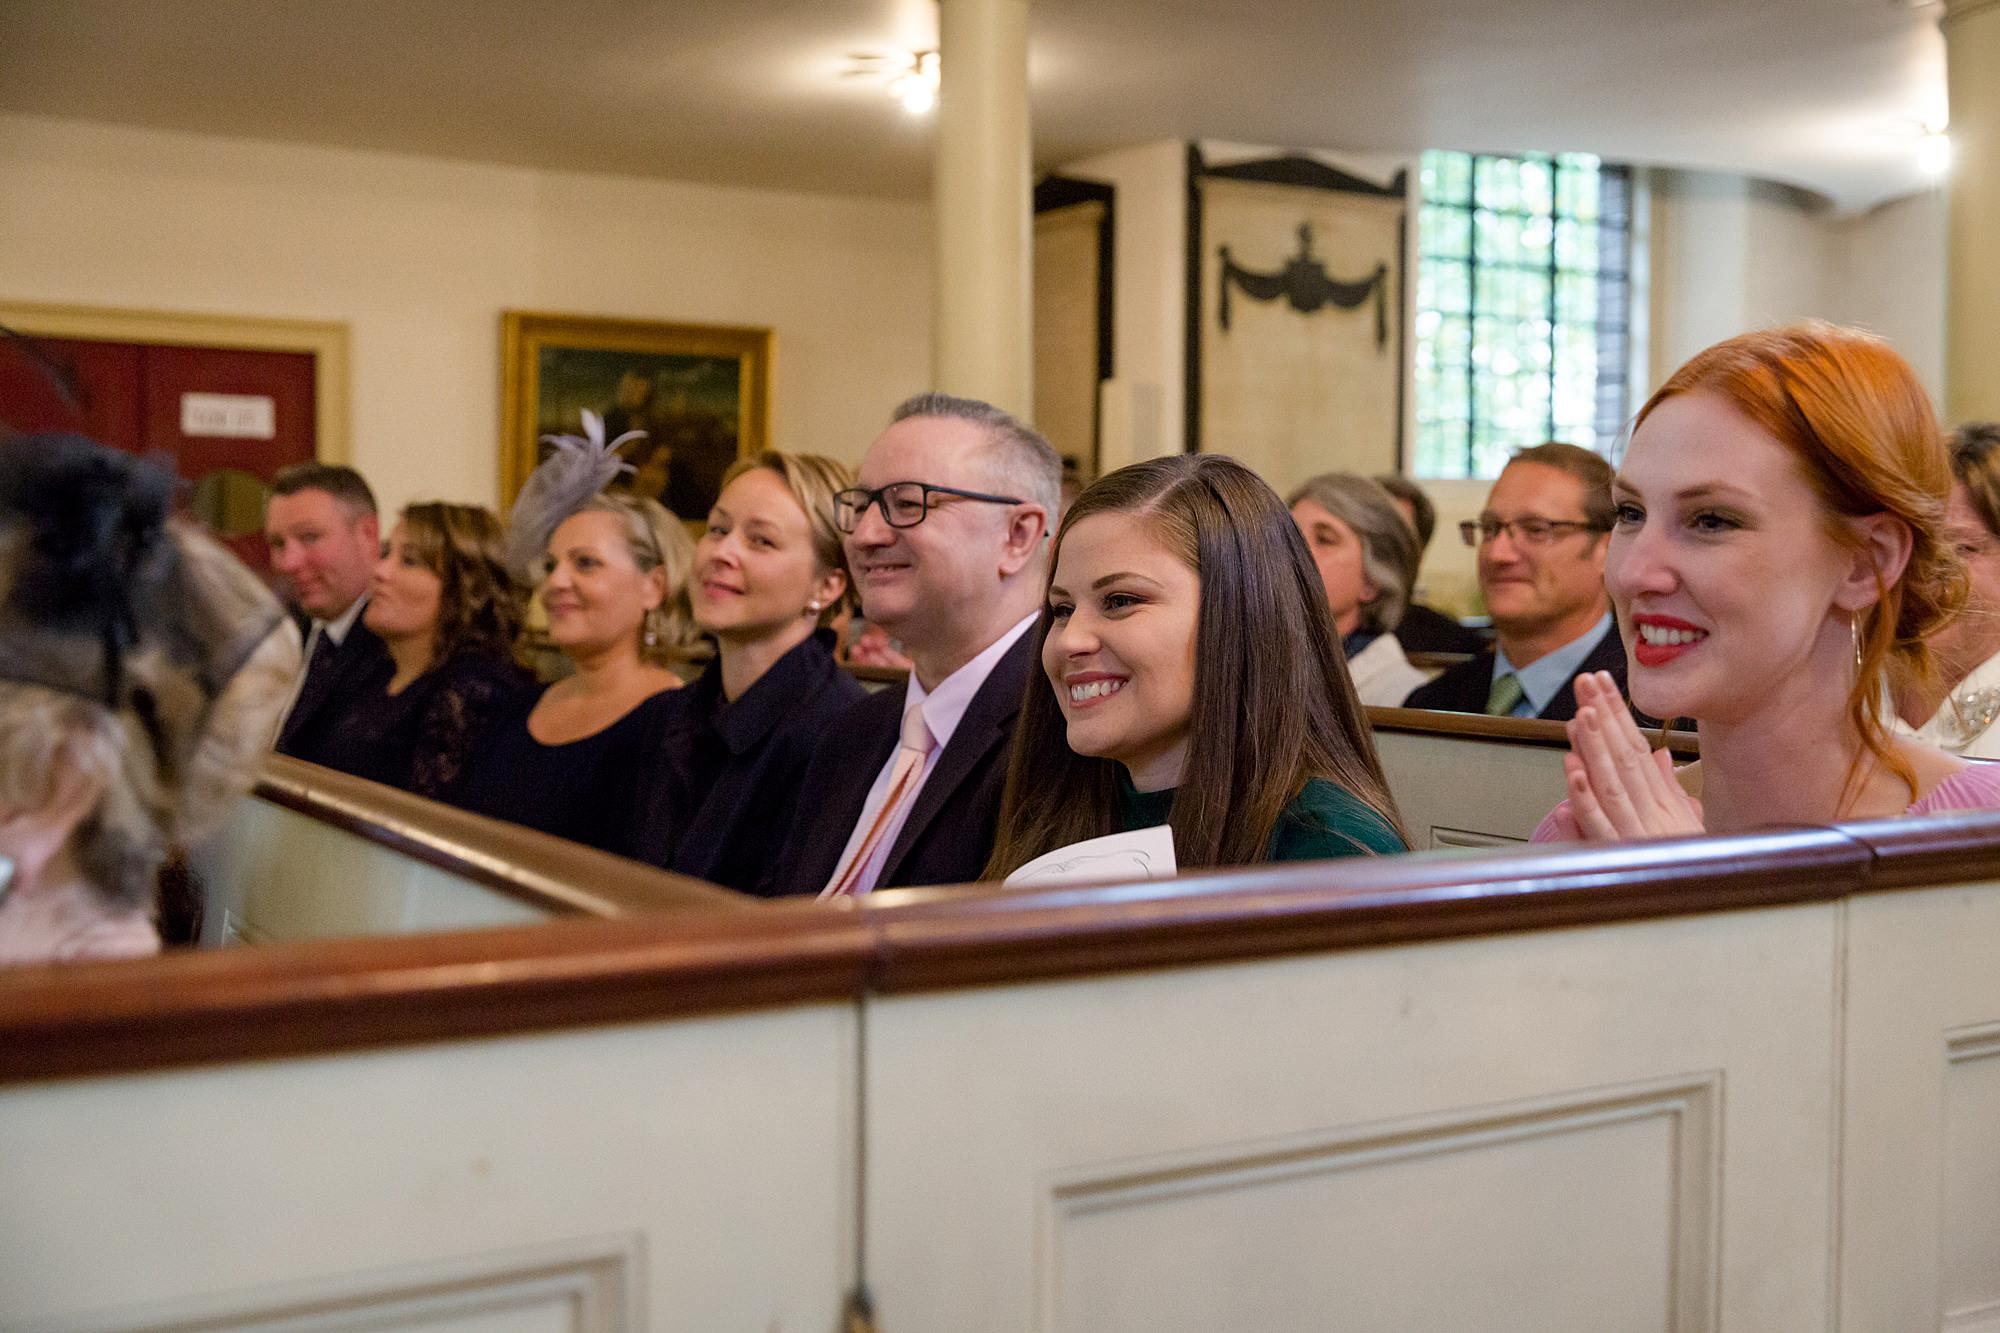 wedding guests smile during ceremony